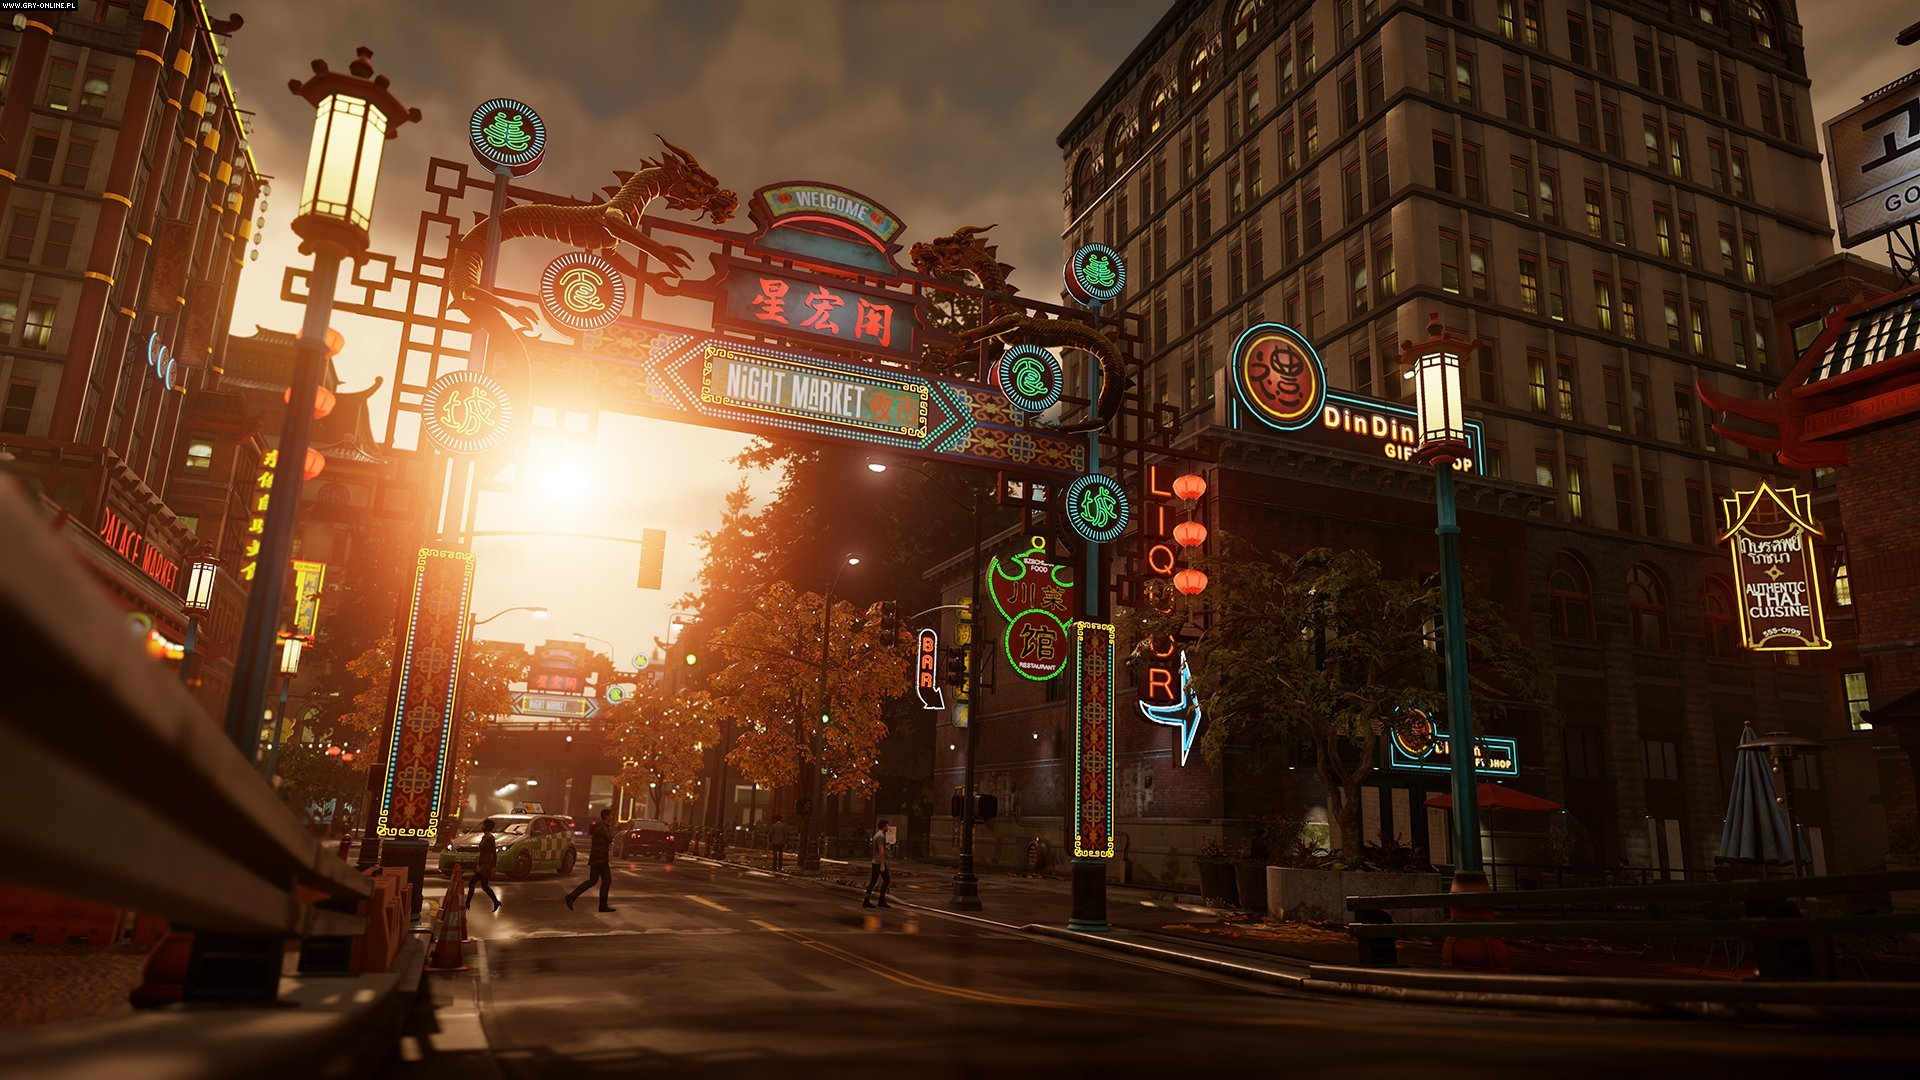 inFamous: Second Son PS4 Games Image 7/138, Sucker Punch, Sony Interactive Entertainment